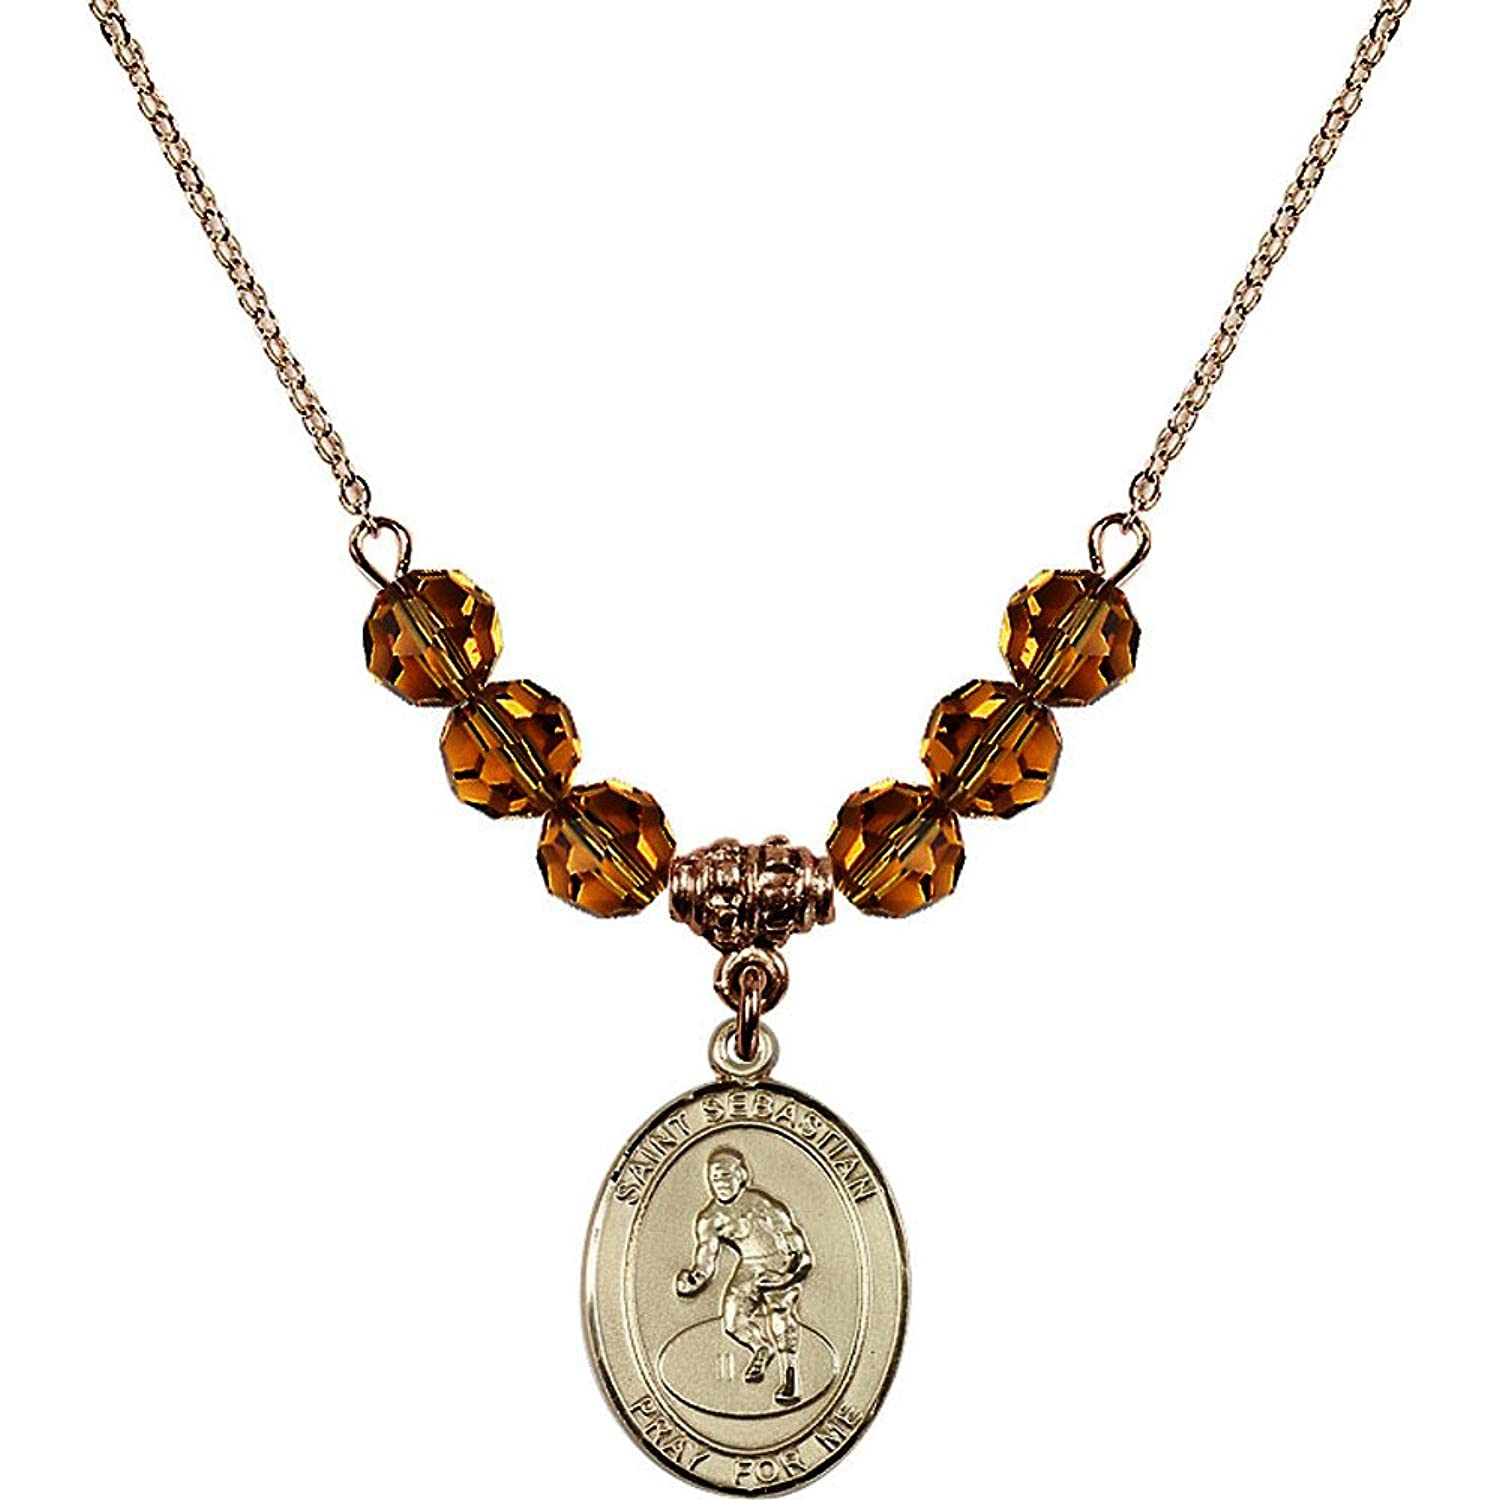 18-Inch Hamilton Gold Plated Necklace with 6mm Yellow November Birth Month Stone Beads and Saint Sebastian/Wrestling Charm